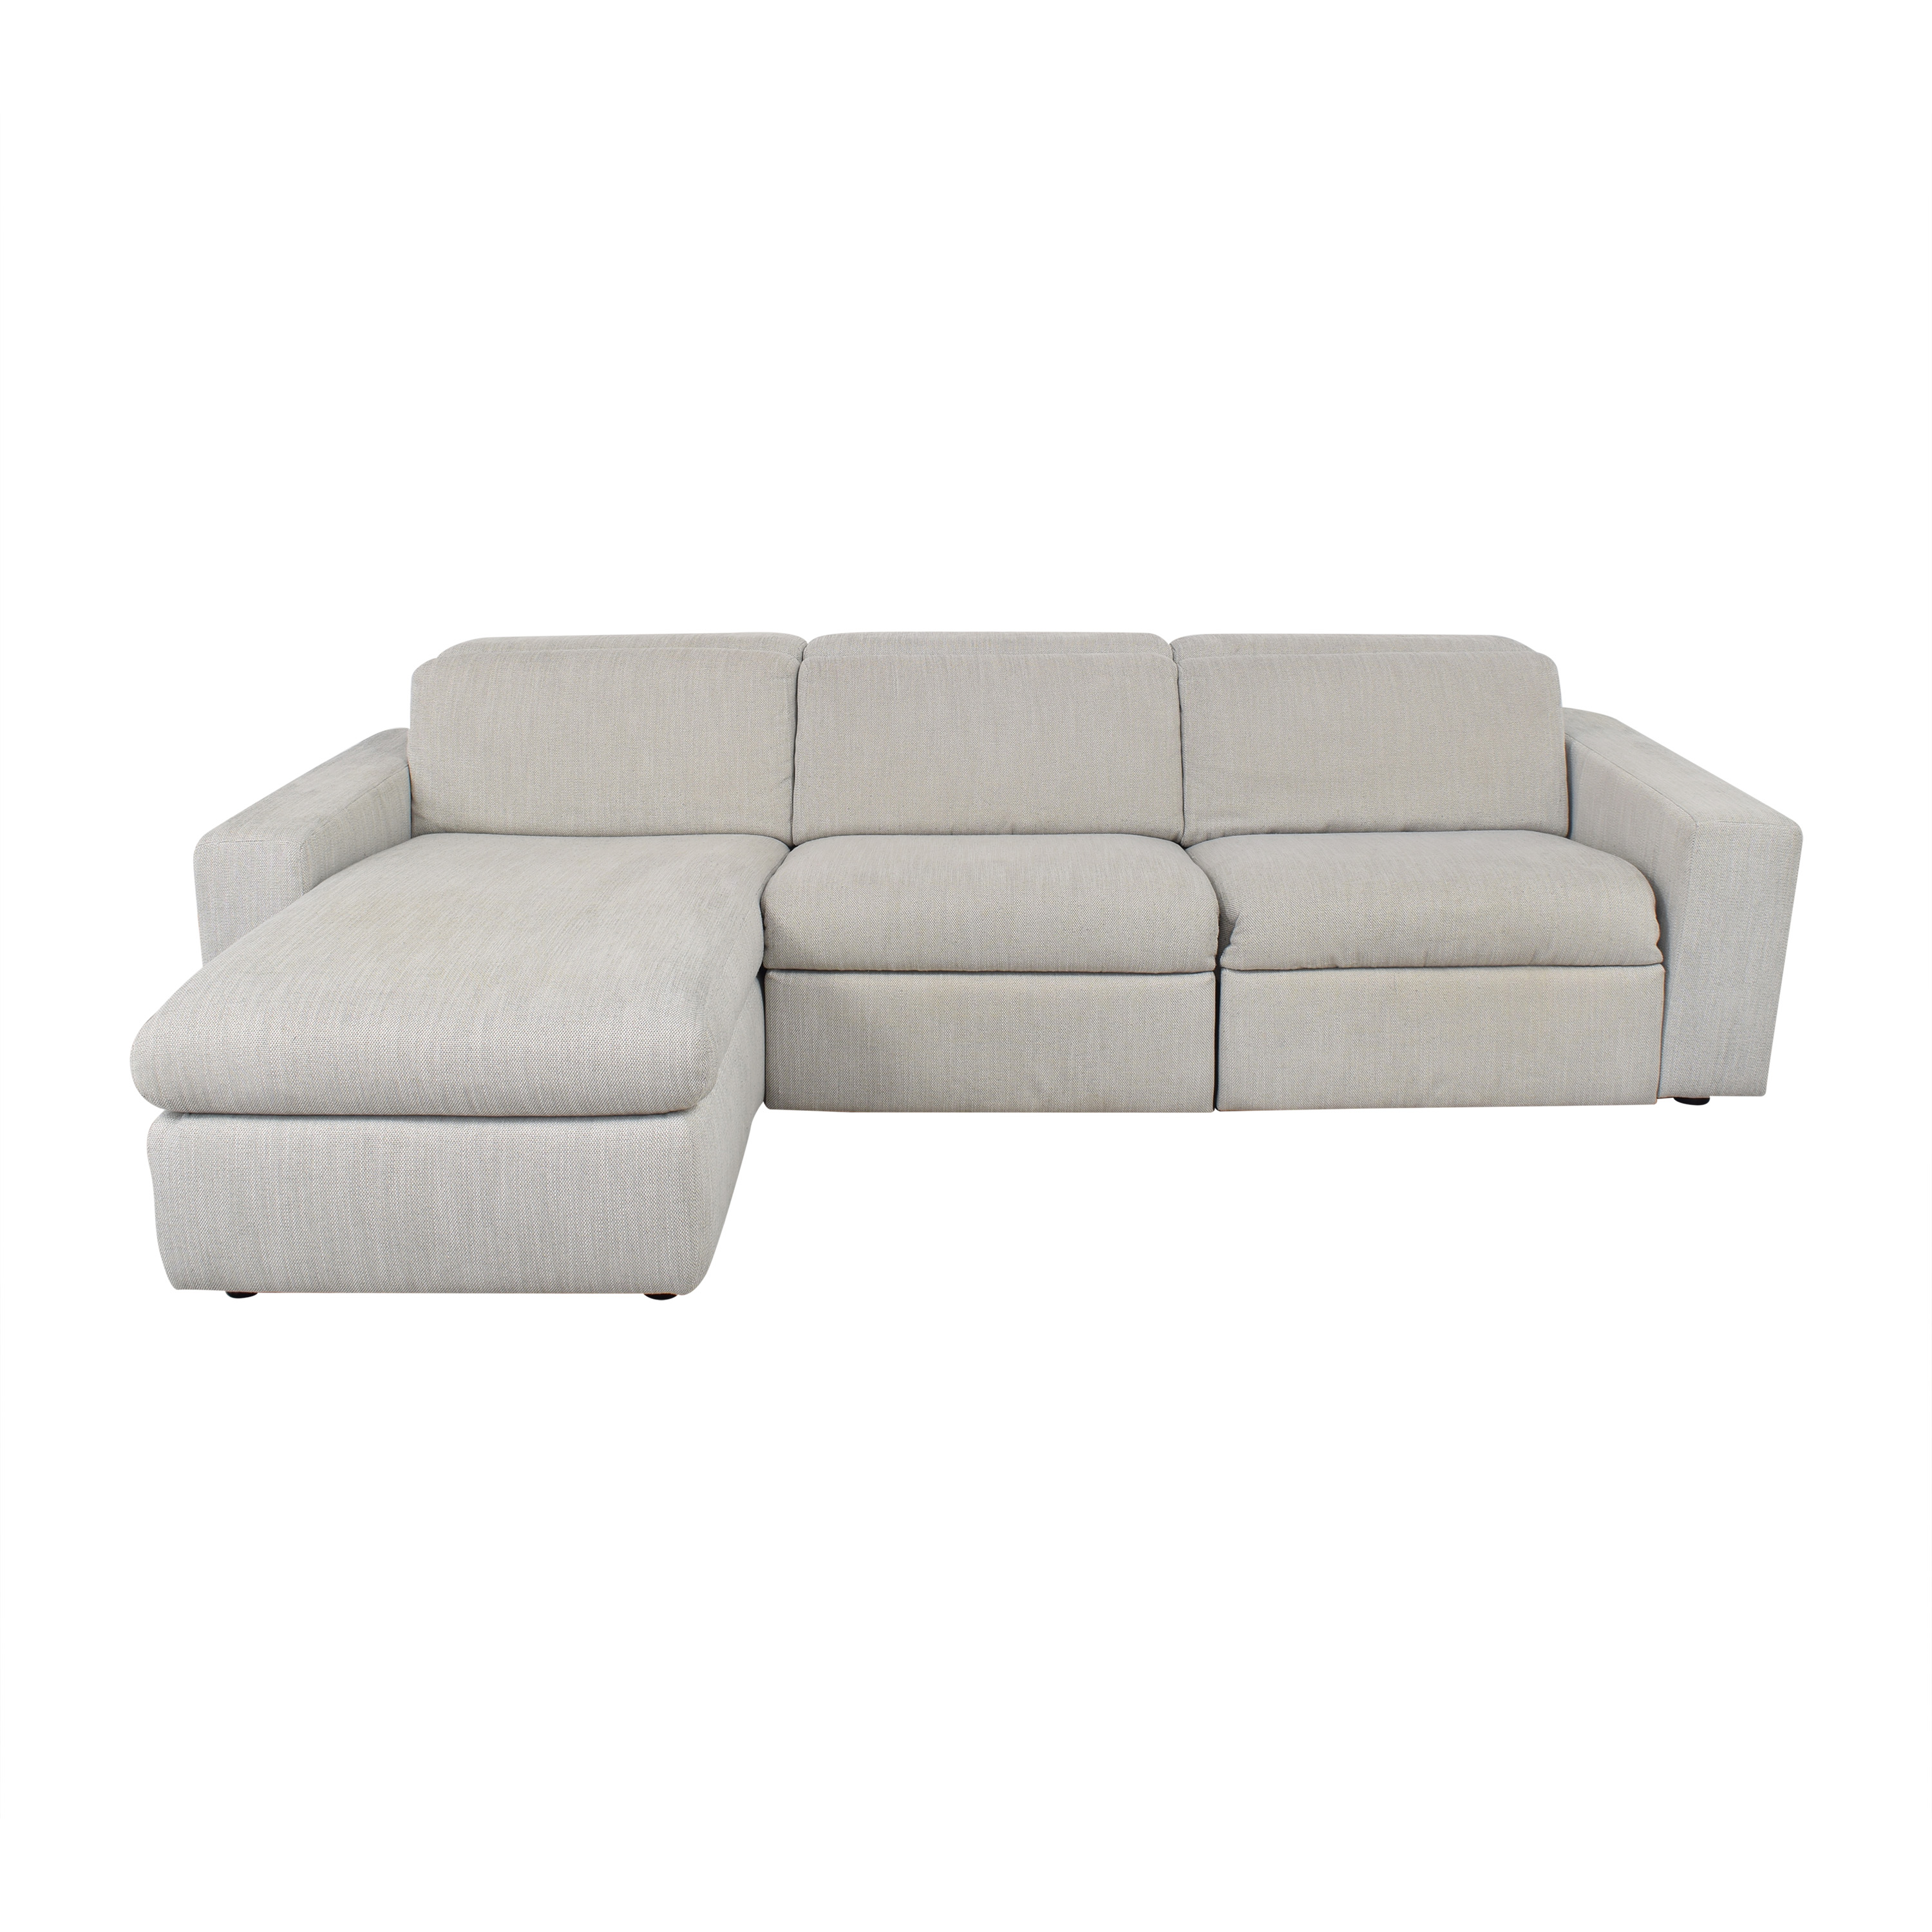 West Elm West Elm Enzo Reclining Chaise Sectional with Storage